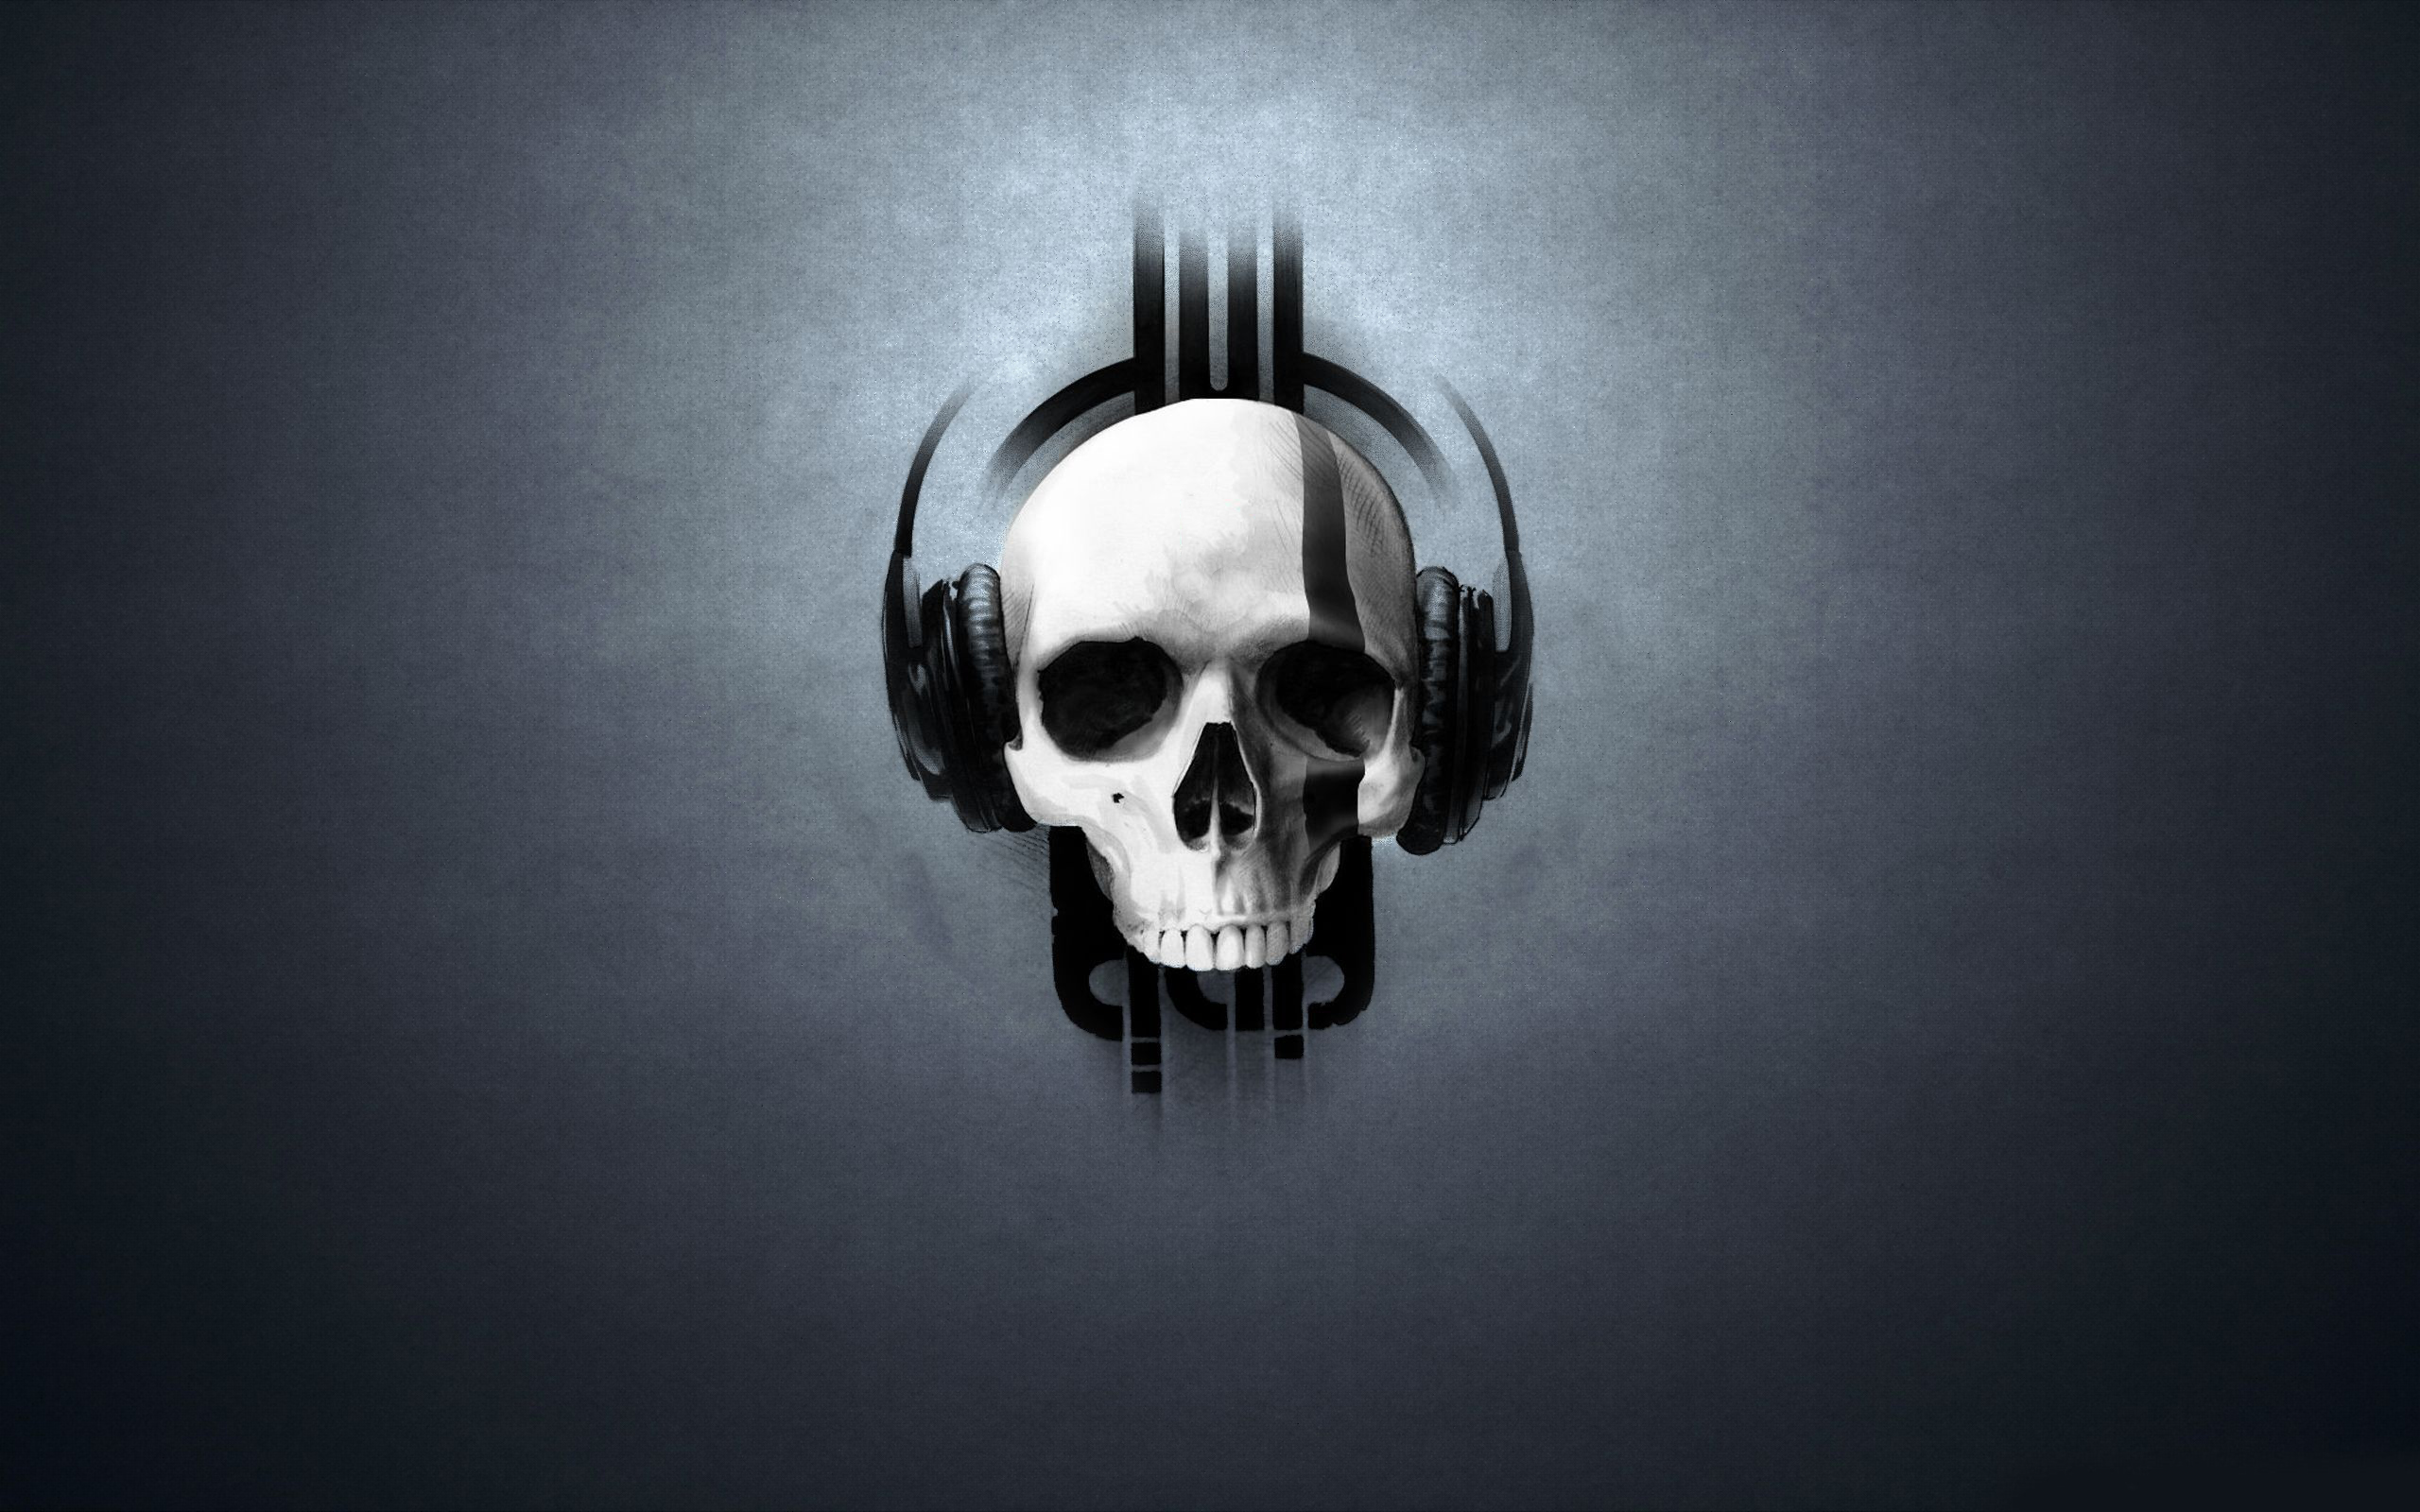 ... Skull Wallpaper; Skull Wallpaper HD